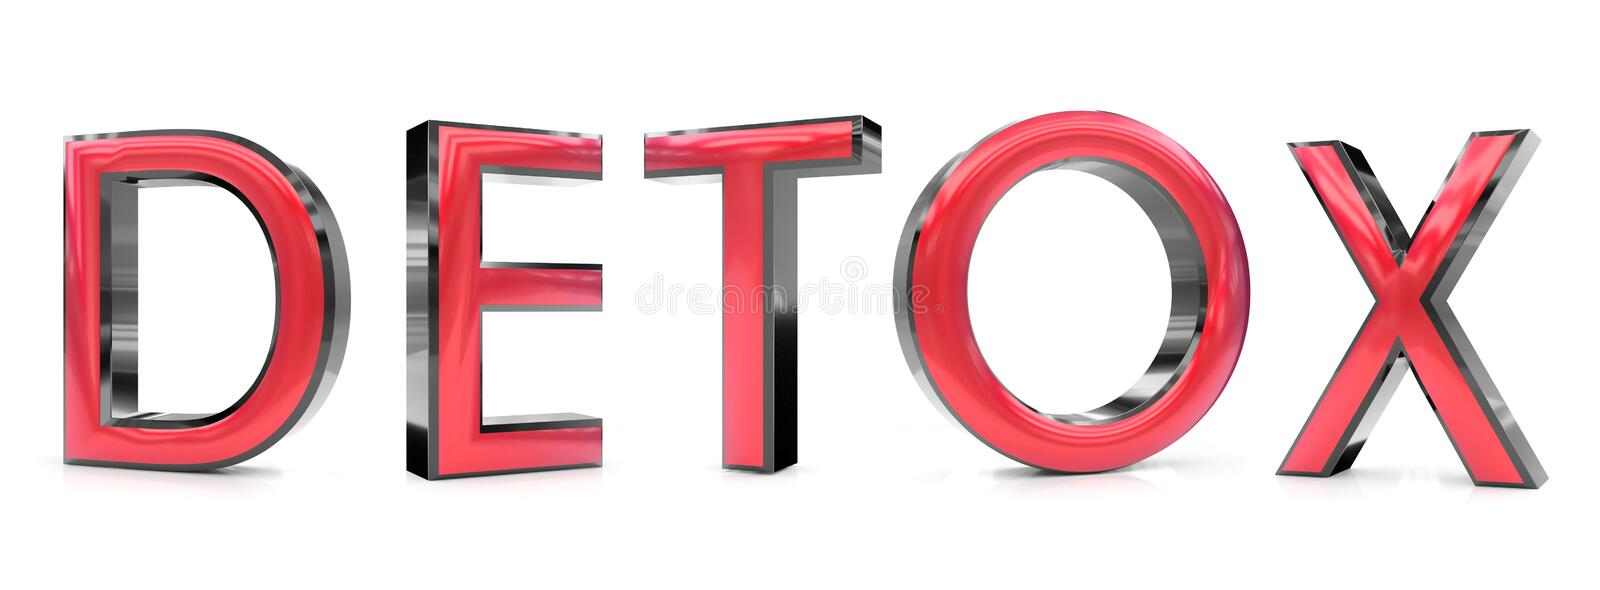 Detox word. The detox word 3d rendered red and gray metallic color , isolated on white background stock illustration